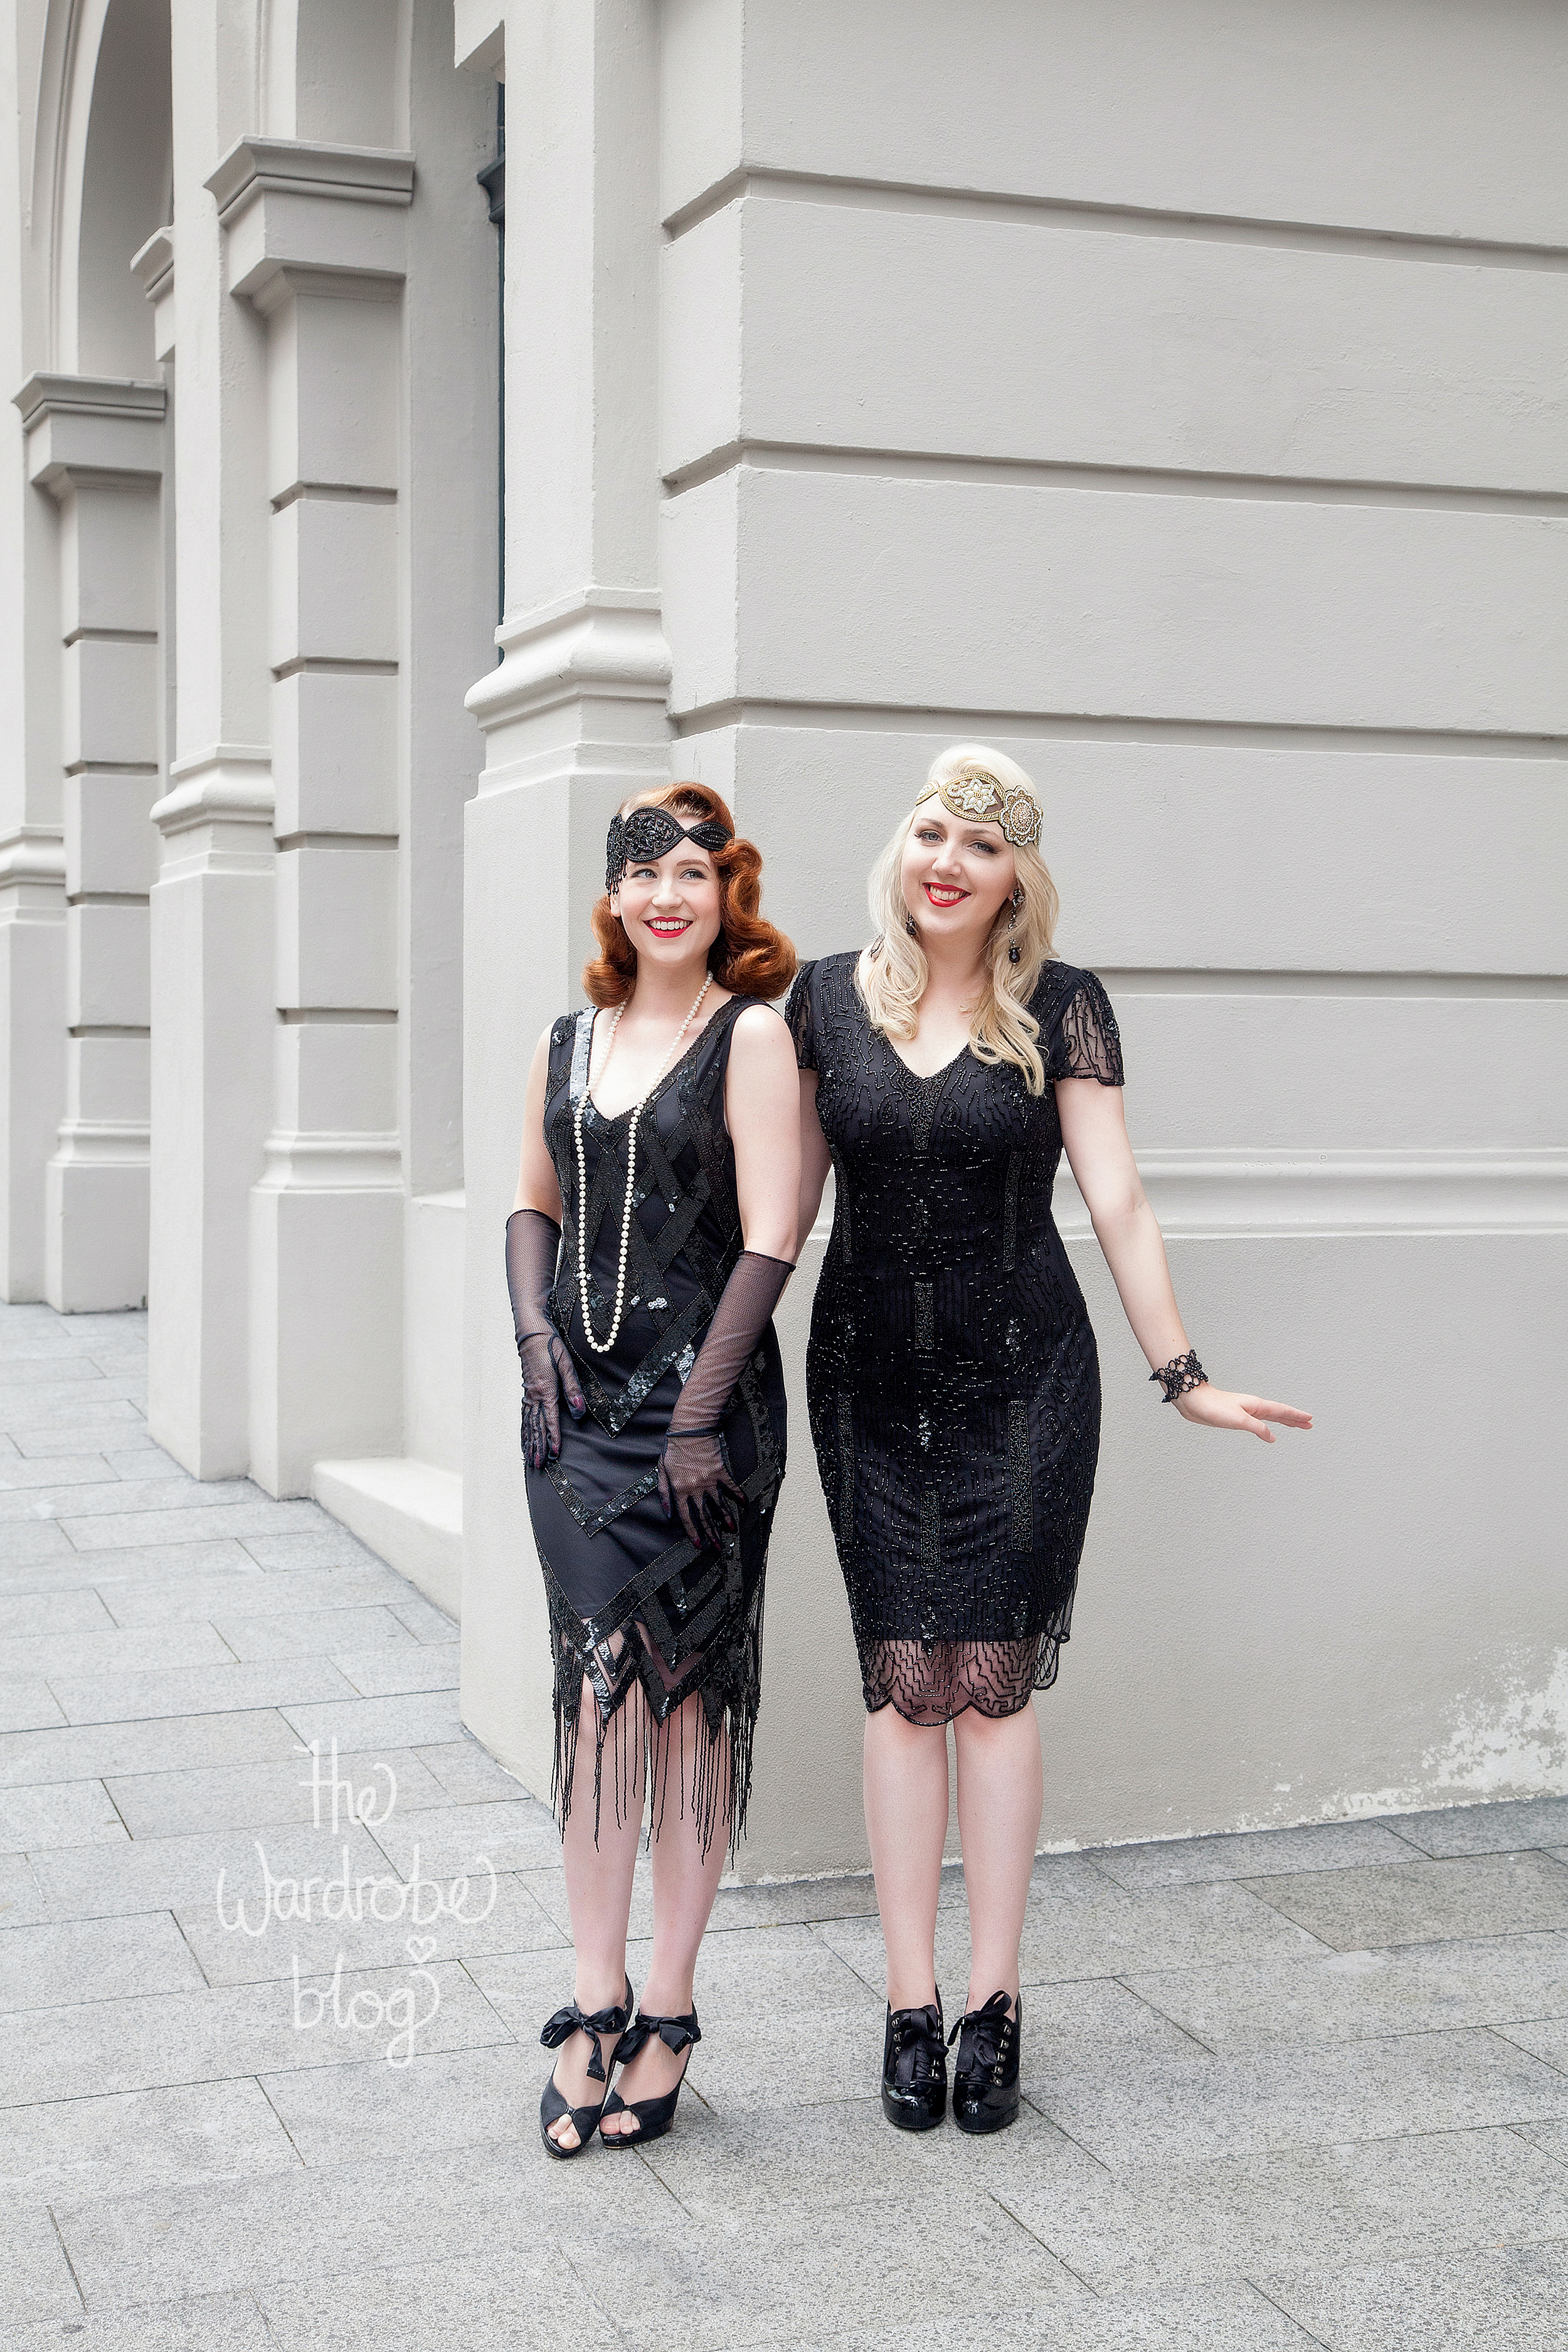 I wear: Downton Abbey Vintage Inspired Flapper Dress in Black, with the Amelia Vintage headband. Earrings + Bracelet from Lovisa + Shoes from Mi Piaci. // Miss HH wears: Glitz Vintage Inspired Fringe Dress in Black, and the Julia Vintage headband.